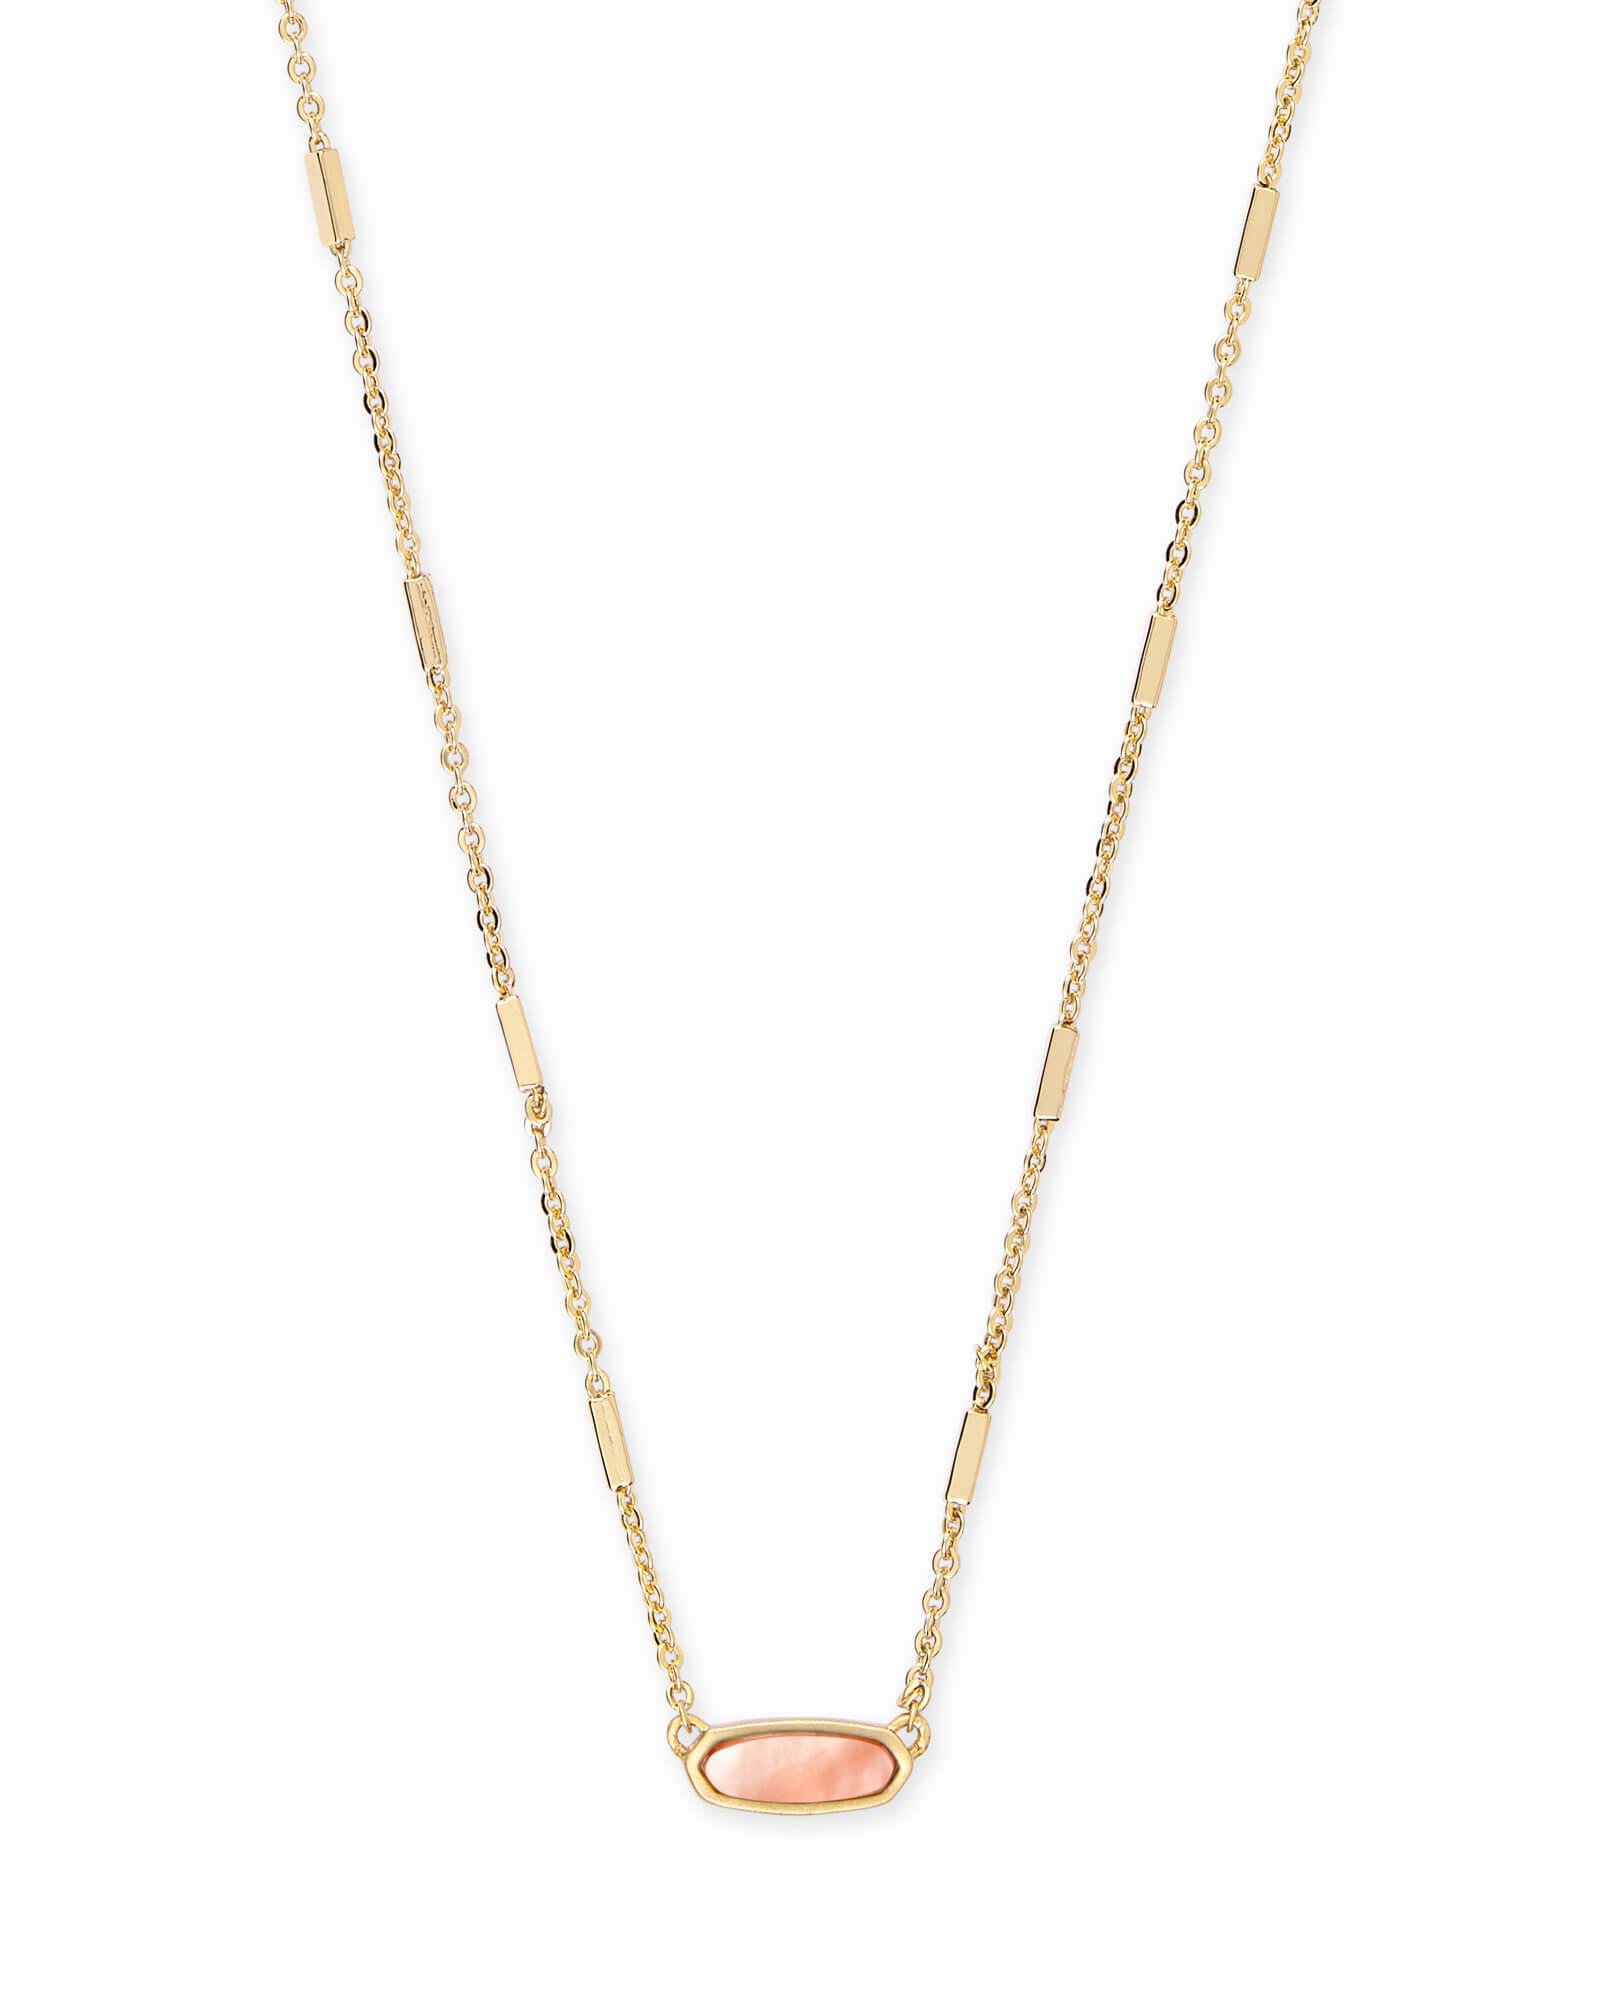 Miya Gold Pendant Necklace in Peach Pearl